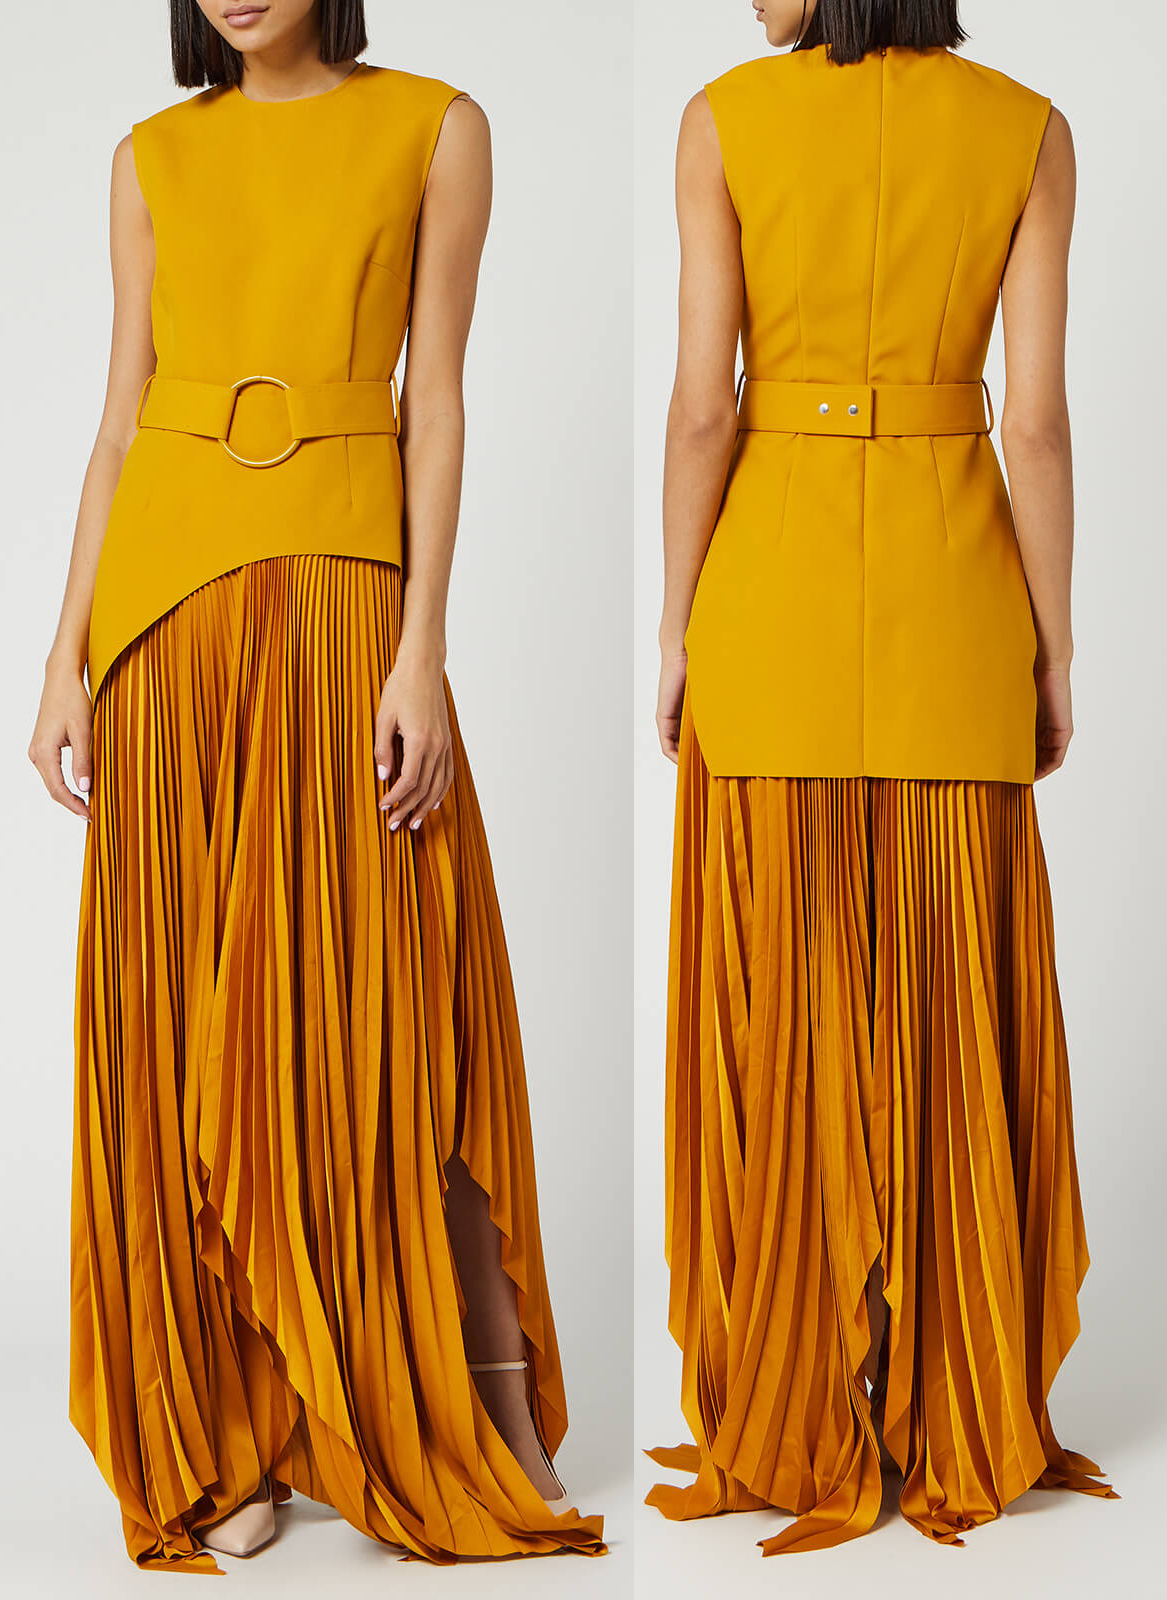 Mustard Yellow Dress 2020. Solace London Dresses 2020. Outfits in Mustard Yellow 2020. Outfit ideas in Mustard Yellow 2020. Fall Fashion Trends 2020. Autumn Fashion Trends 2020. Long Mustard Yellow Dress 2020. How to wear Yellow 2020.